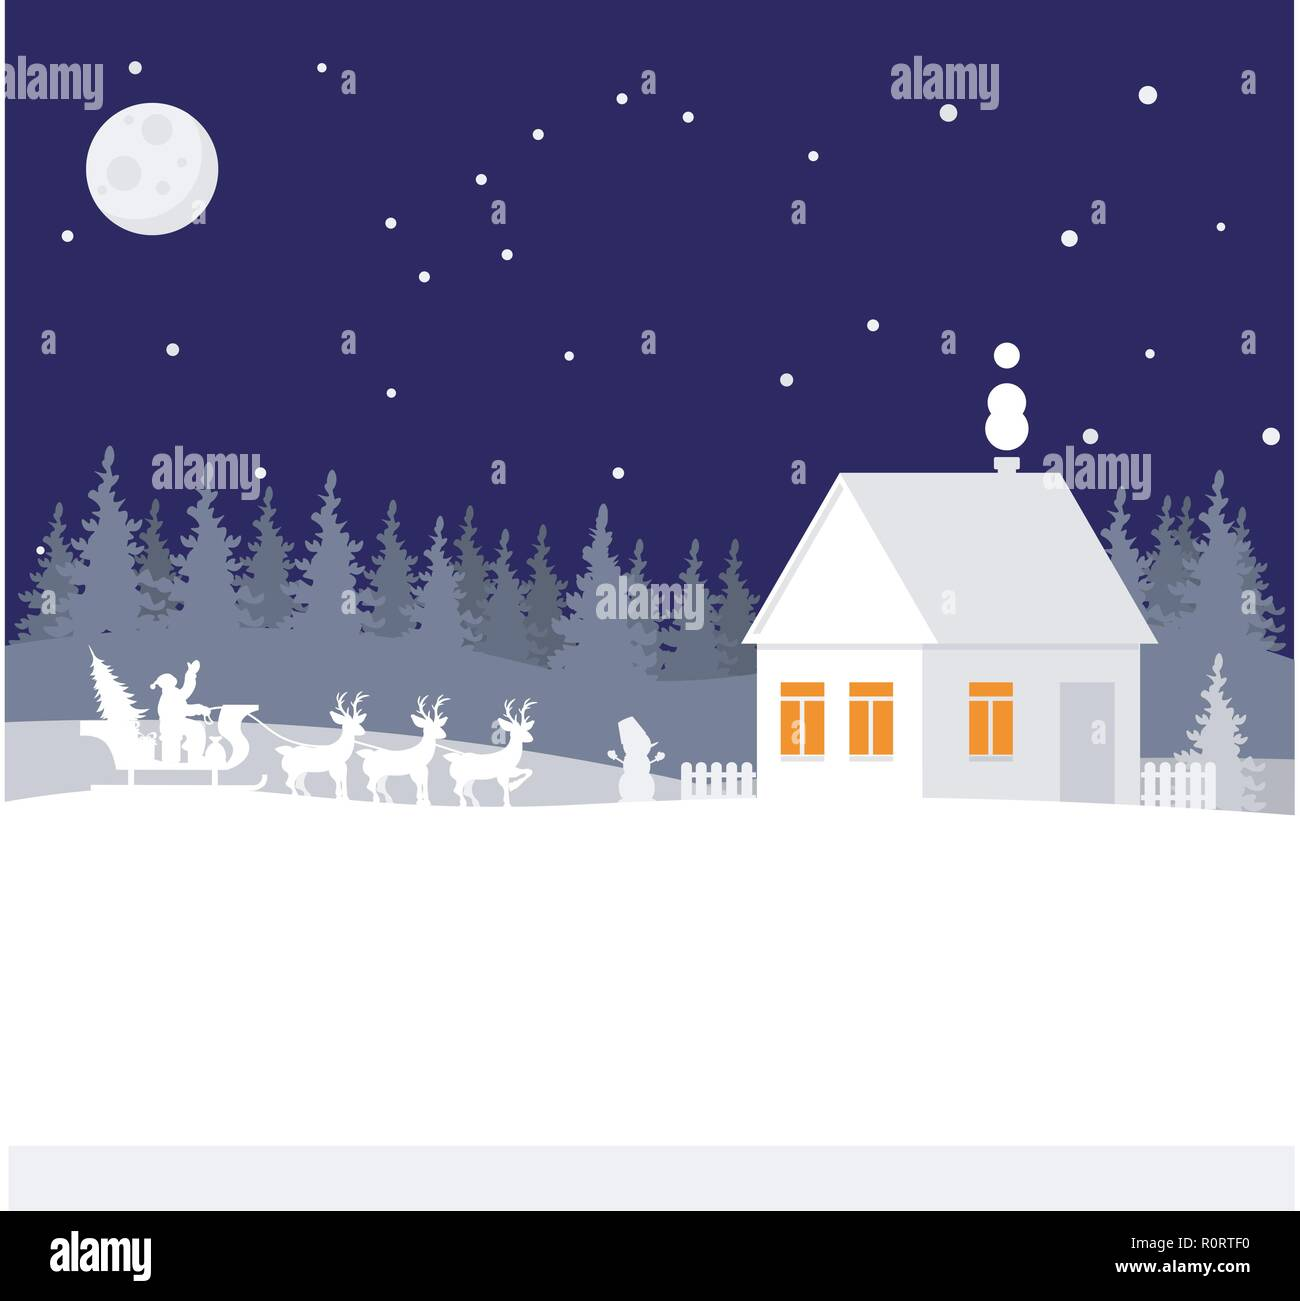 Happy Christmas and new year. Santa brought gifts to the forest house. Paper art in digital style. Vector illustration. - Stock Image